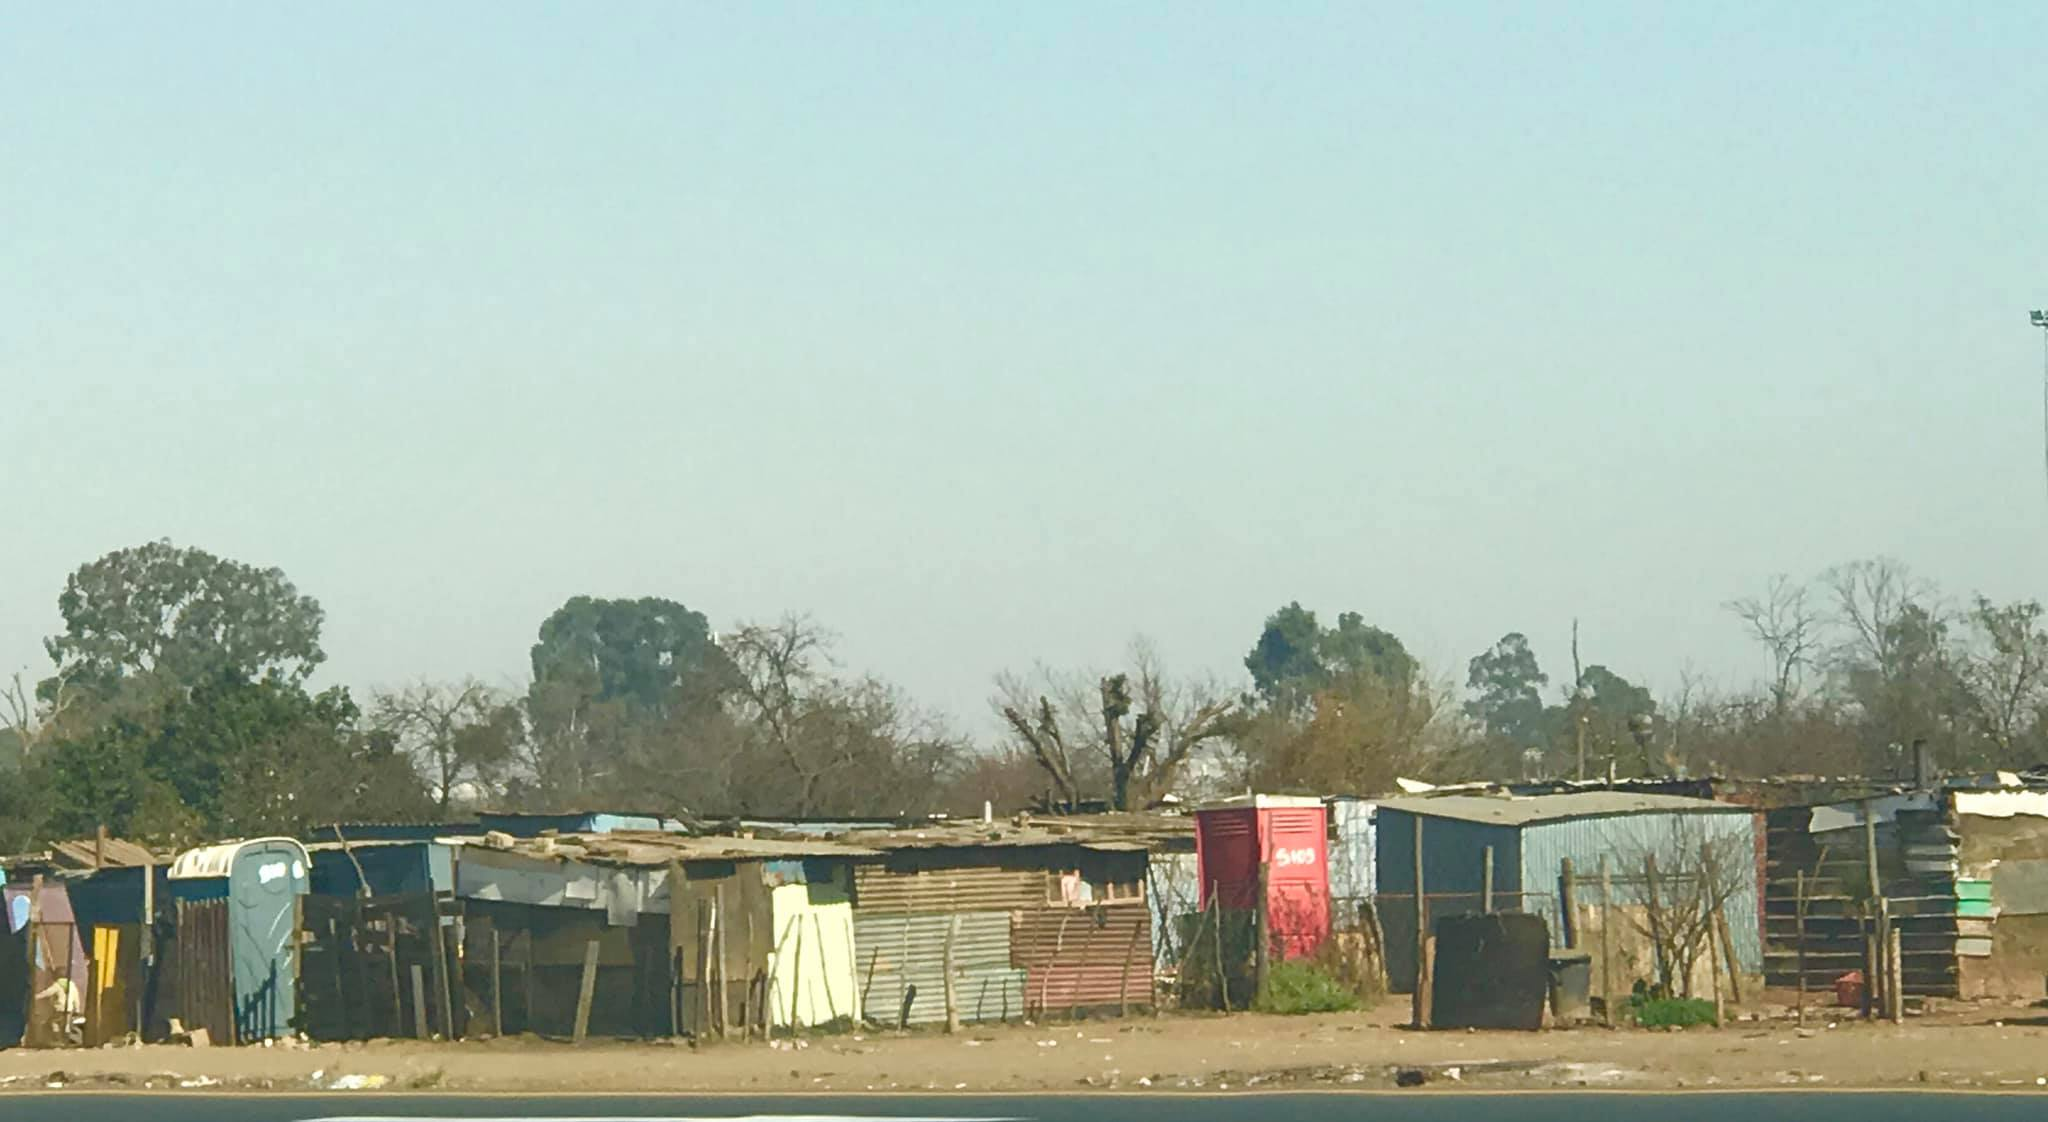 One of many ghettos with sheds and shacks